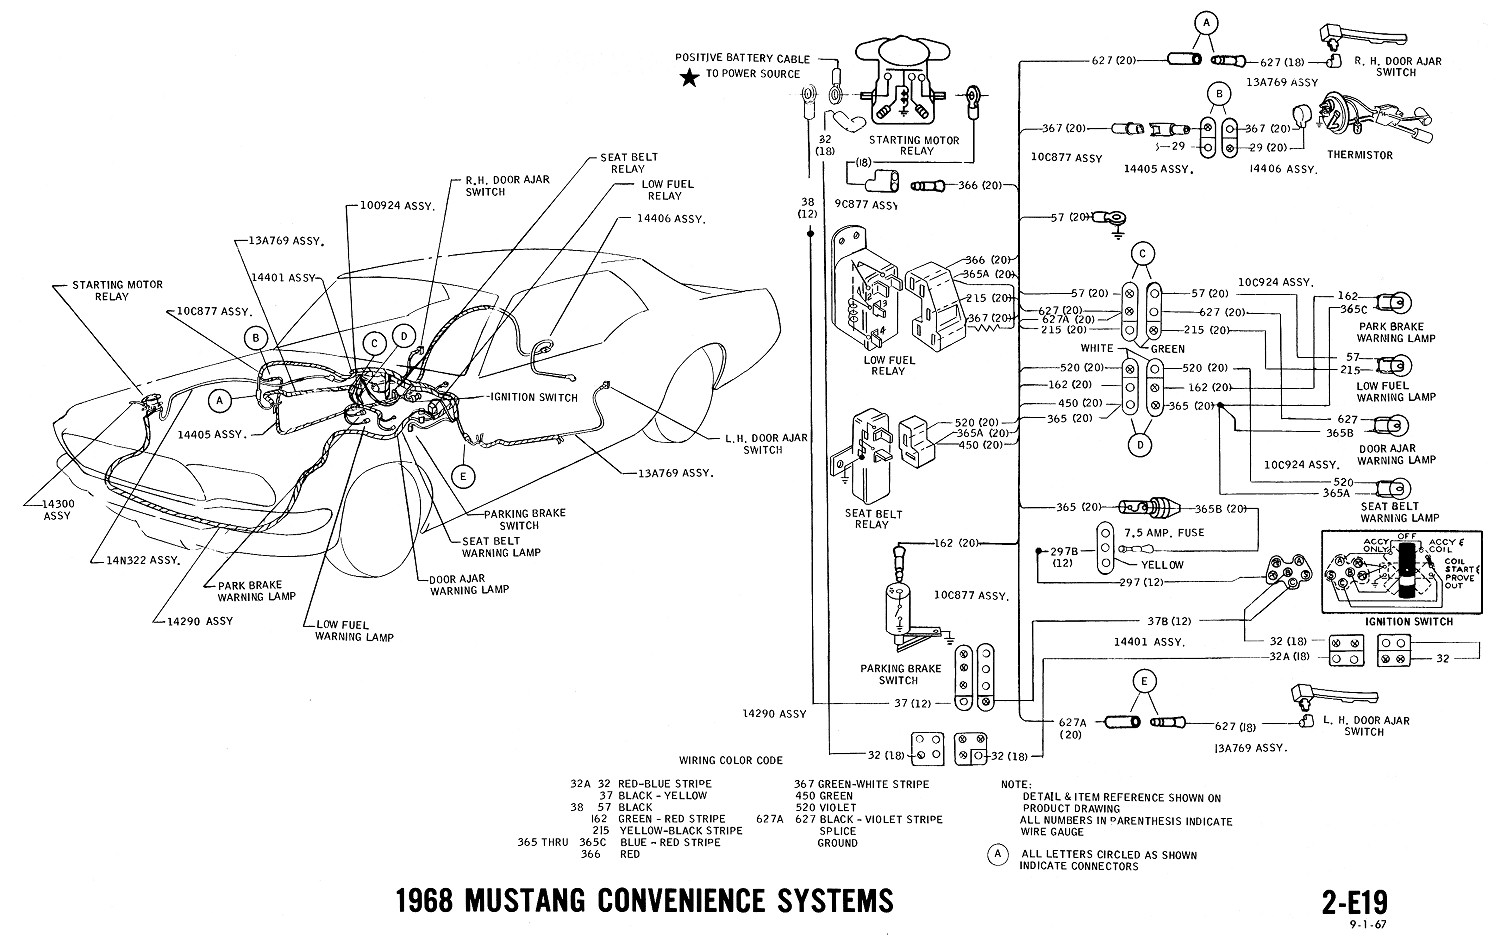 1968 Mustang Wiring Schematic Library 1964 Gto Dash Diagram Convenience Systems